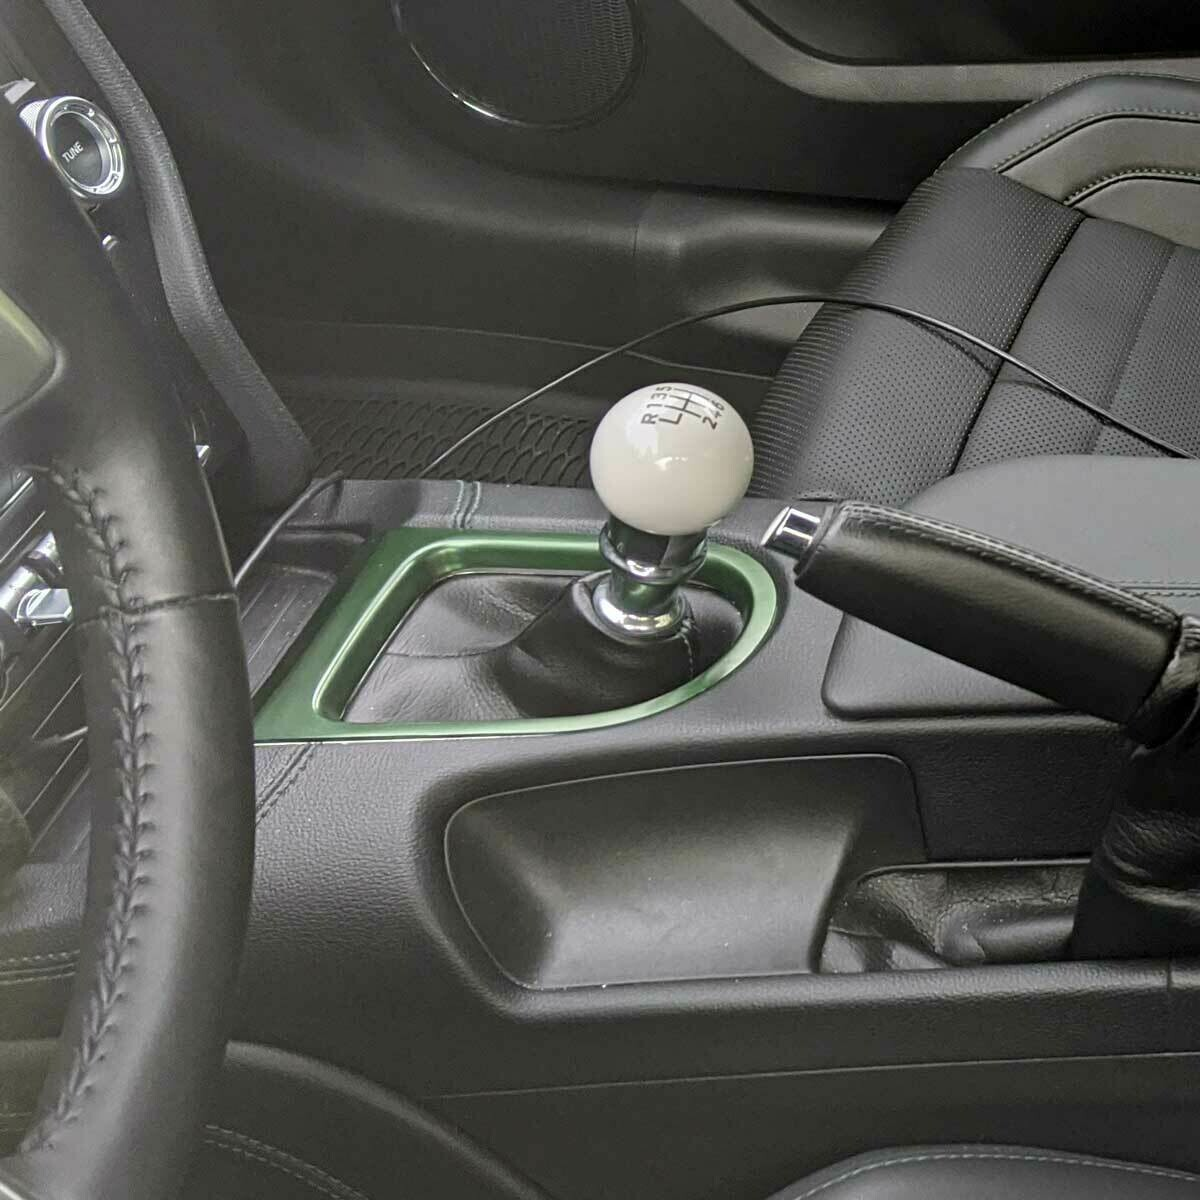 2015 to 2020 Mustang: Shifter Surround